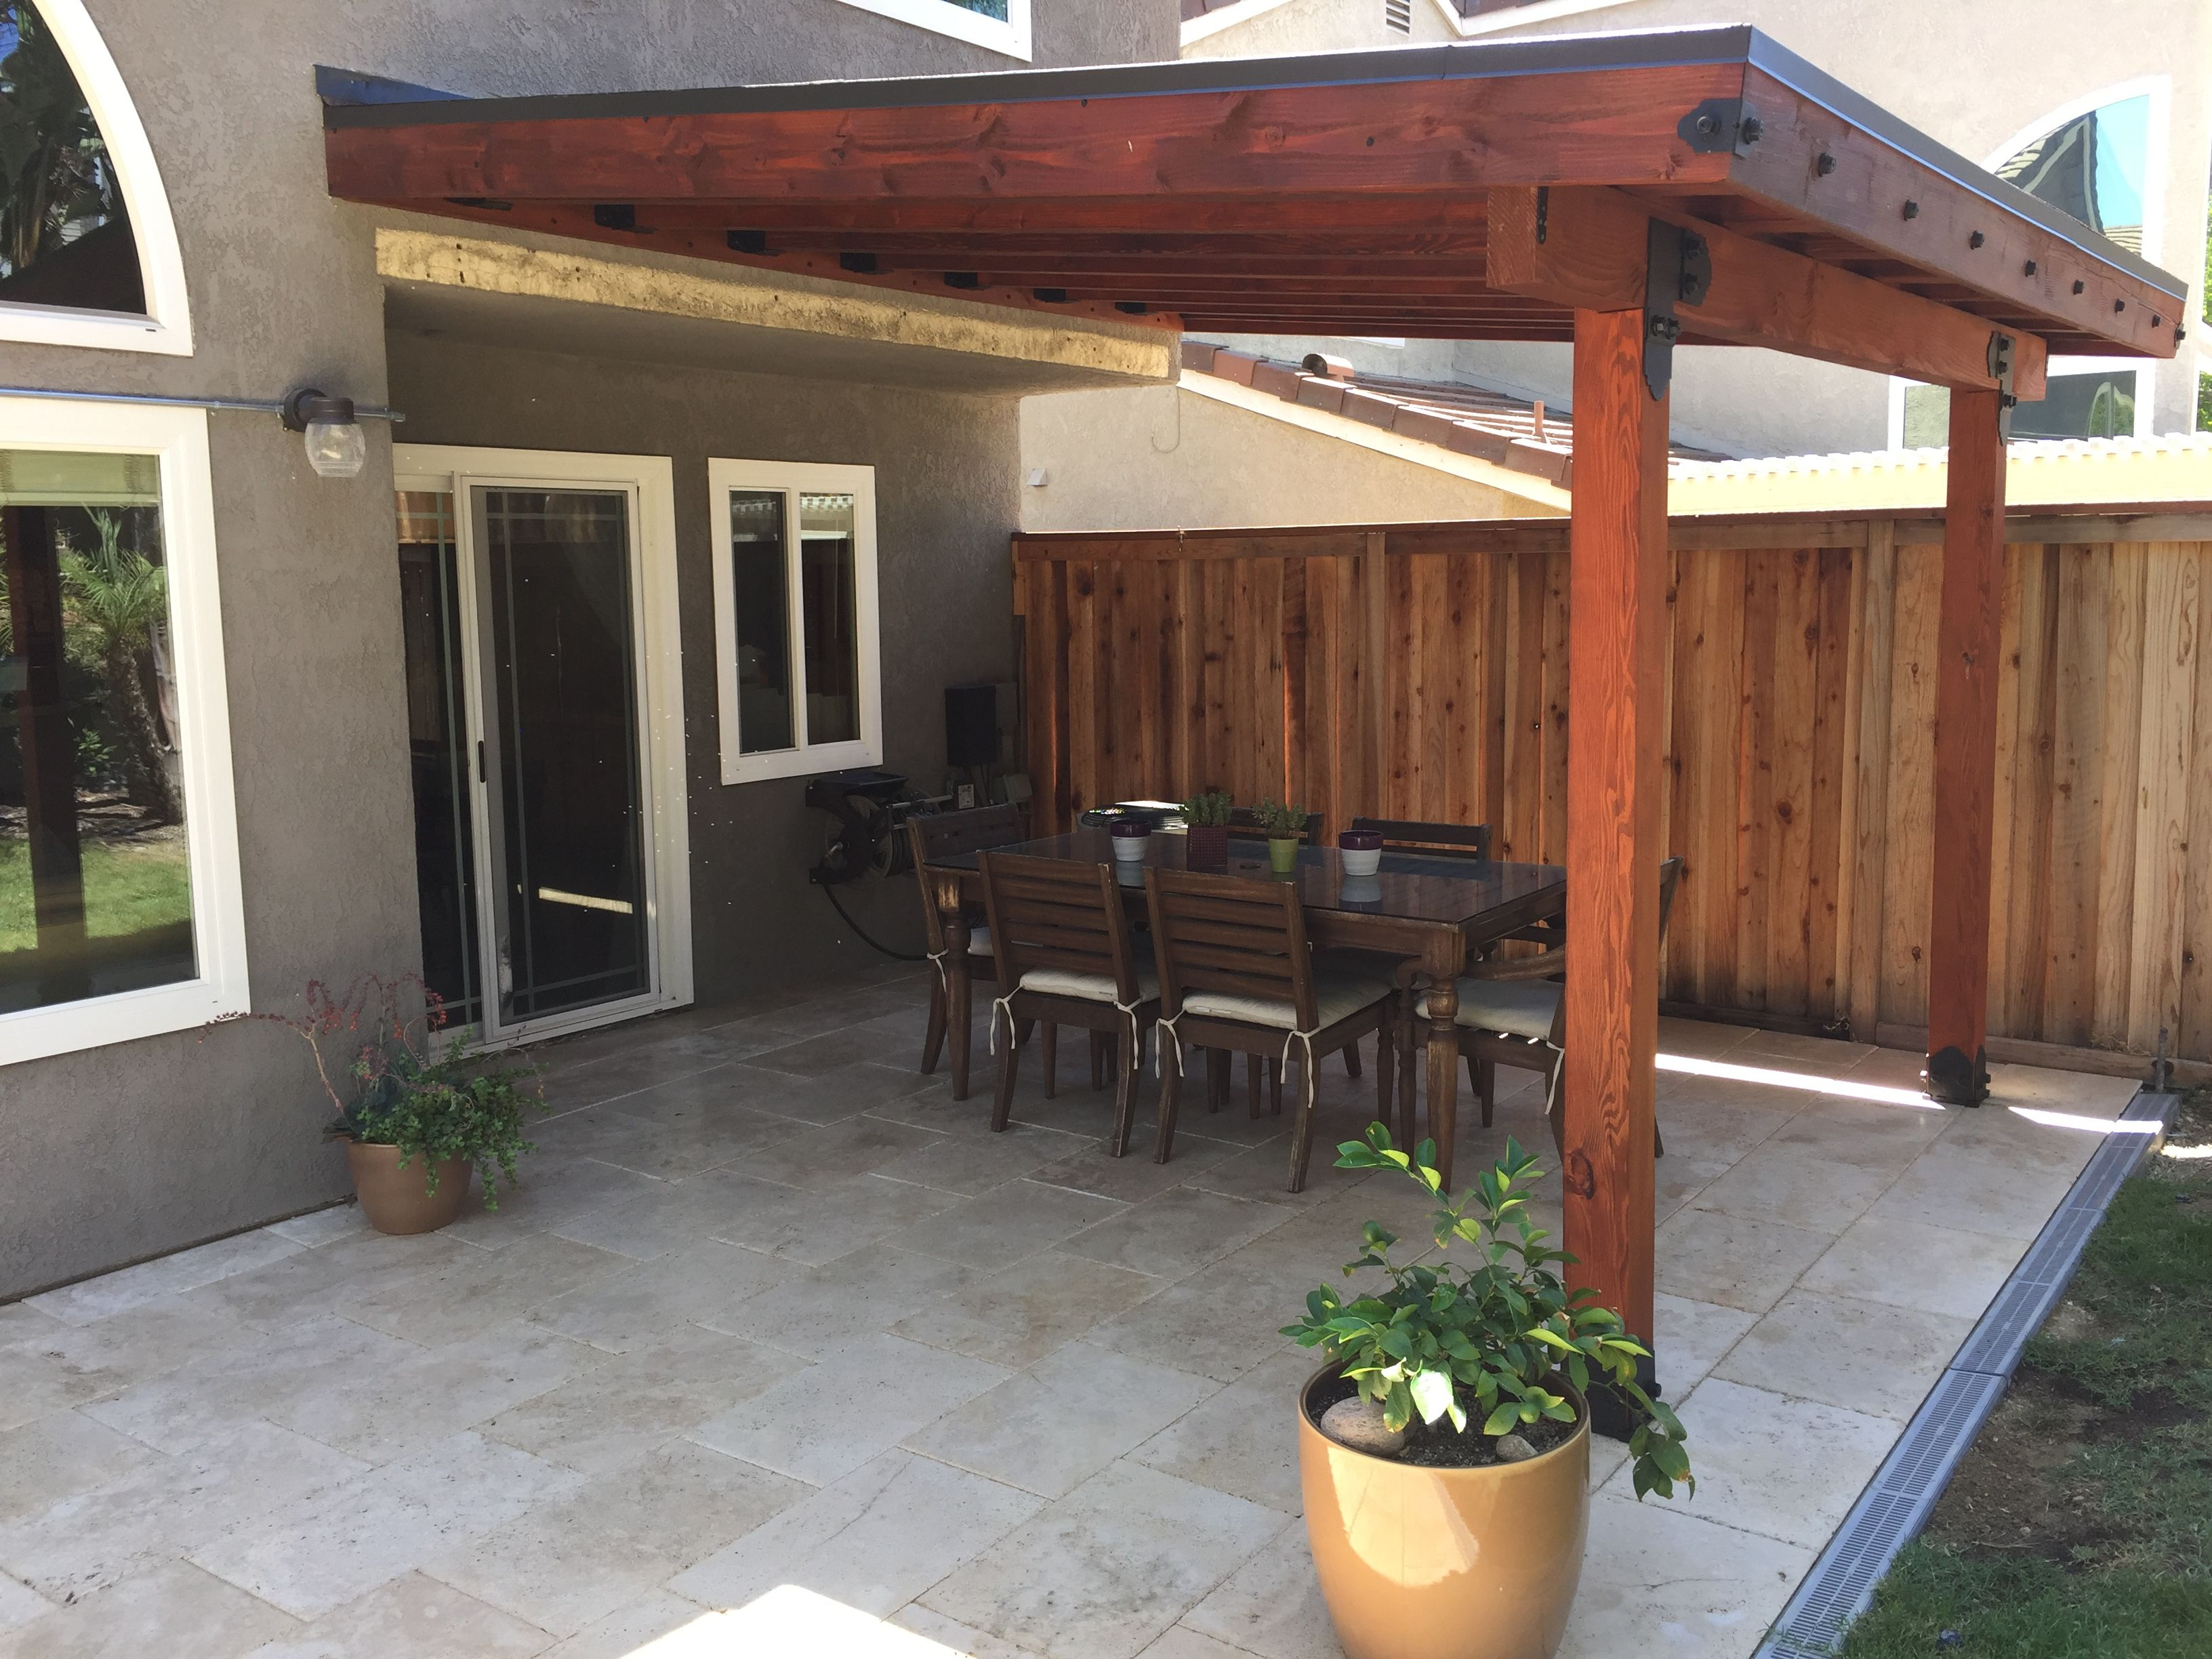 Project Plans Ozco Building Products Greater Projects Start Here Flagstone Patio Outdoor Covered Patio Patio Backyard pergola ideas attached to house